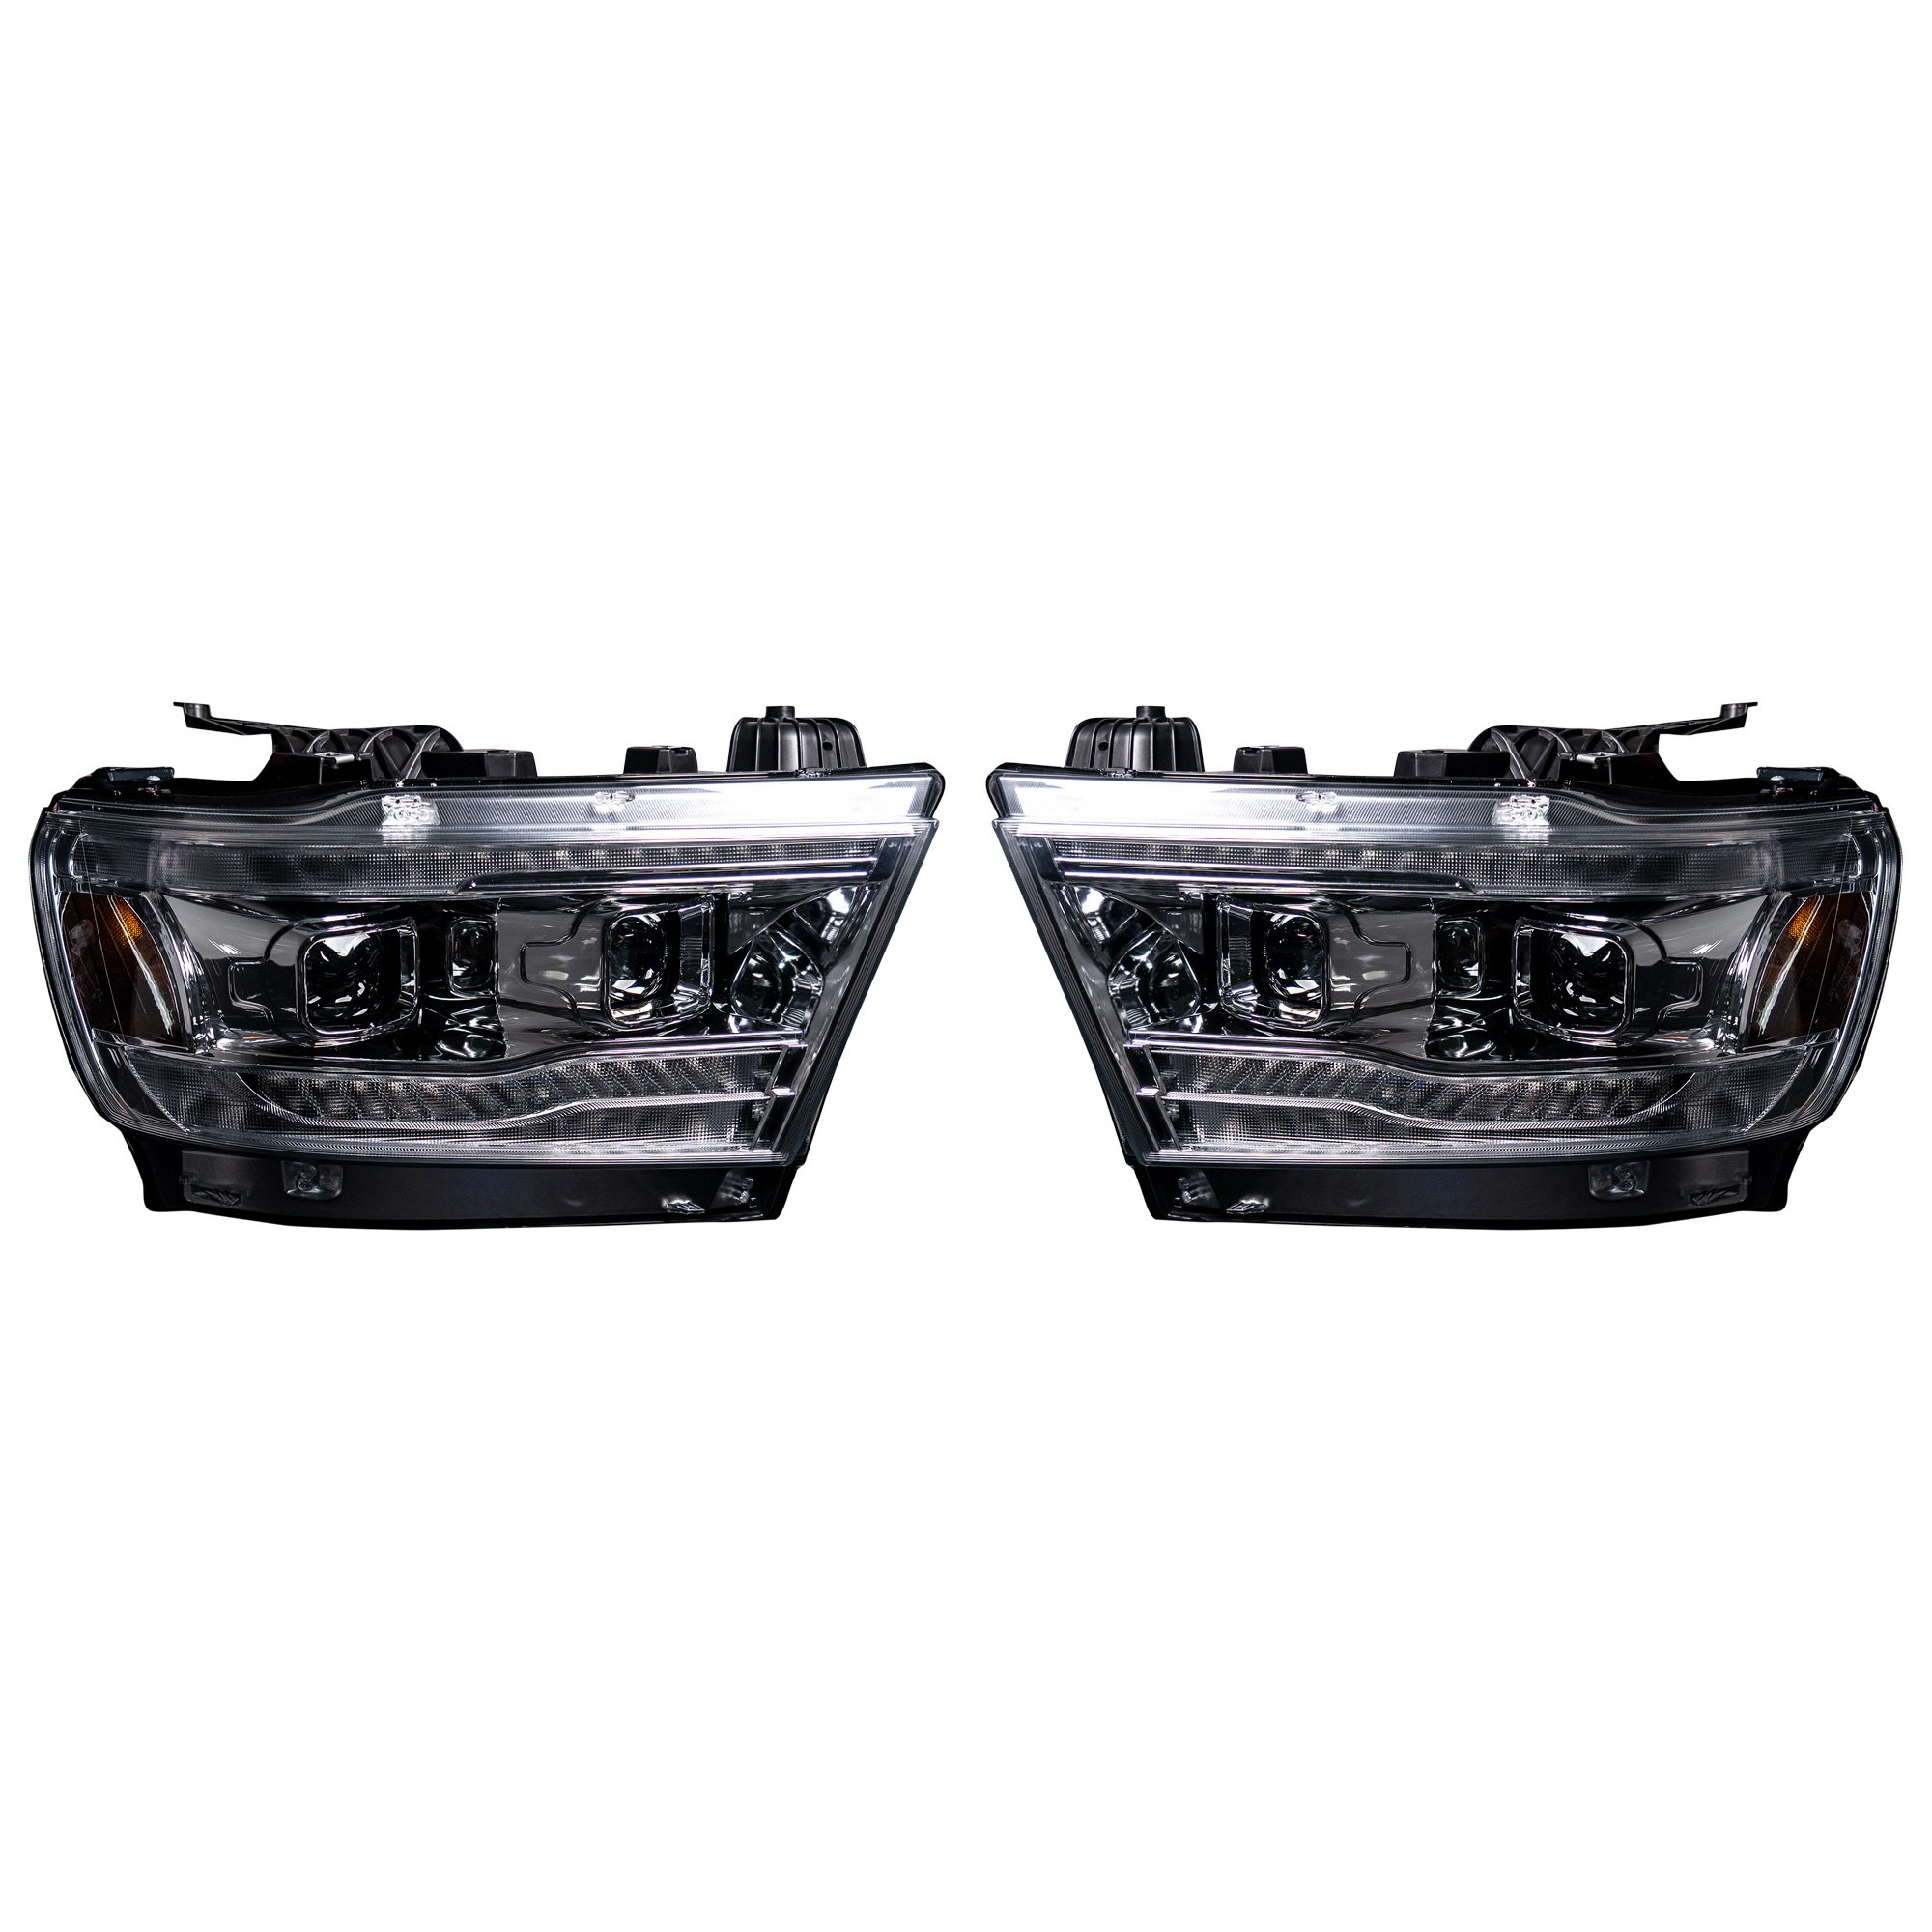 Dodge Ram 1500 19 20 5th Gen Led Hi Low Beam Projector Headlights Oled Drl Scanning Switchback Led Signals Clear Recon Truck Accessories